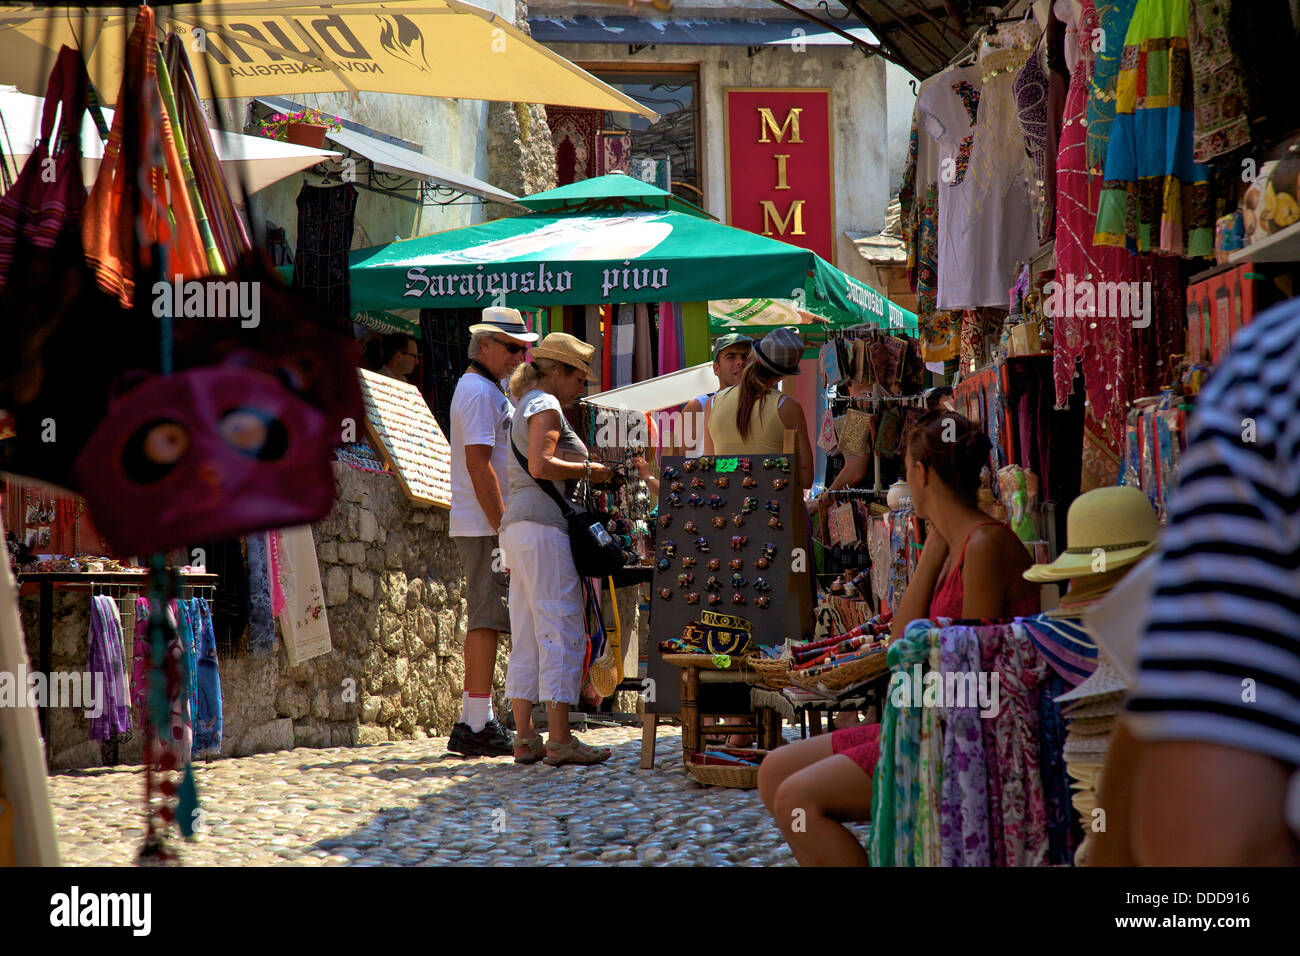 Tourists Shopping, Mostar, Bosnia, Bosnia-Herzegovina, Balkans, South Eastern Europe - Stock Image